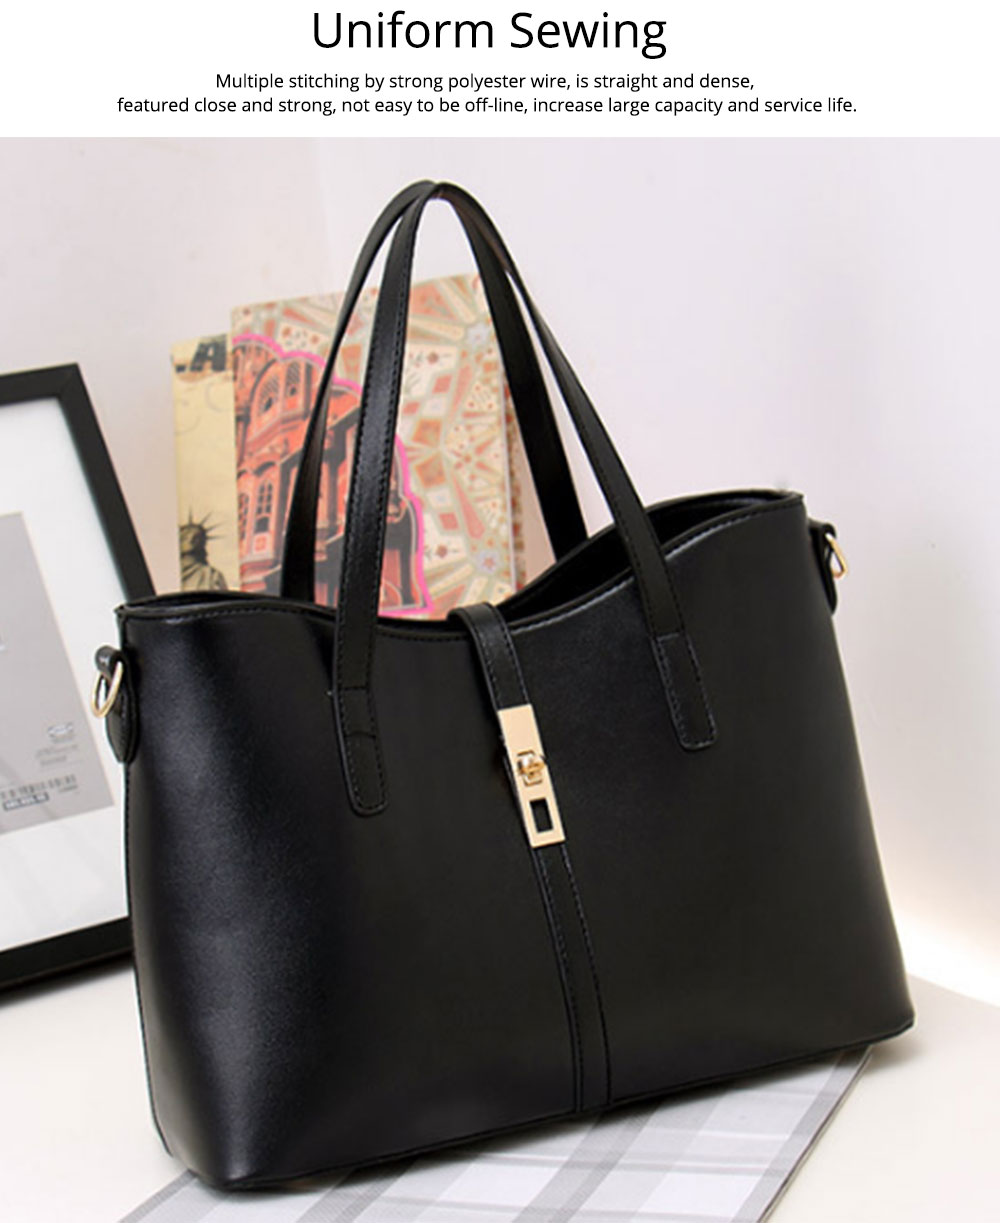 Simple Women Accessories Lady Tote Bag Sets - 3pcs Solid PU Leather Shoulder Bag & Cross Body Pouch & Strapped Clutch 4